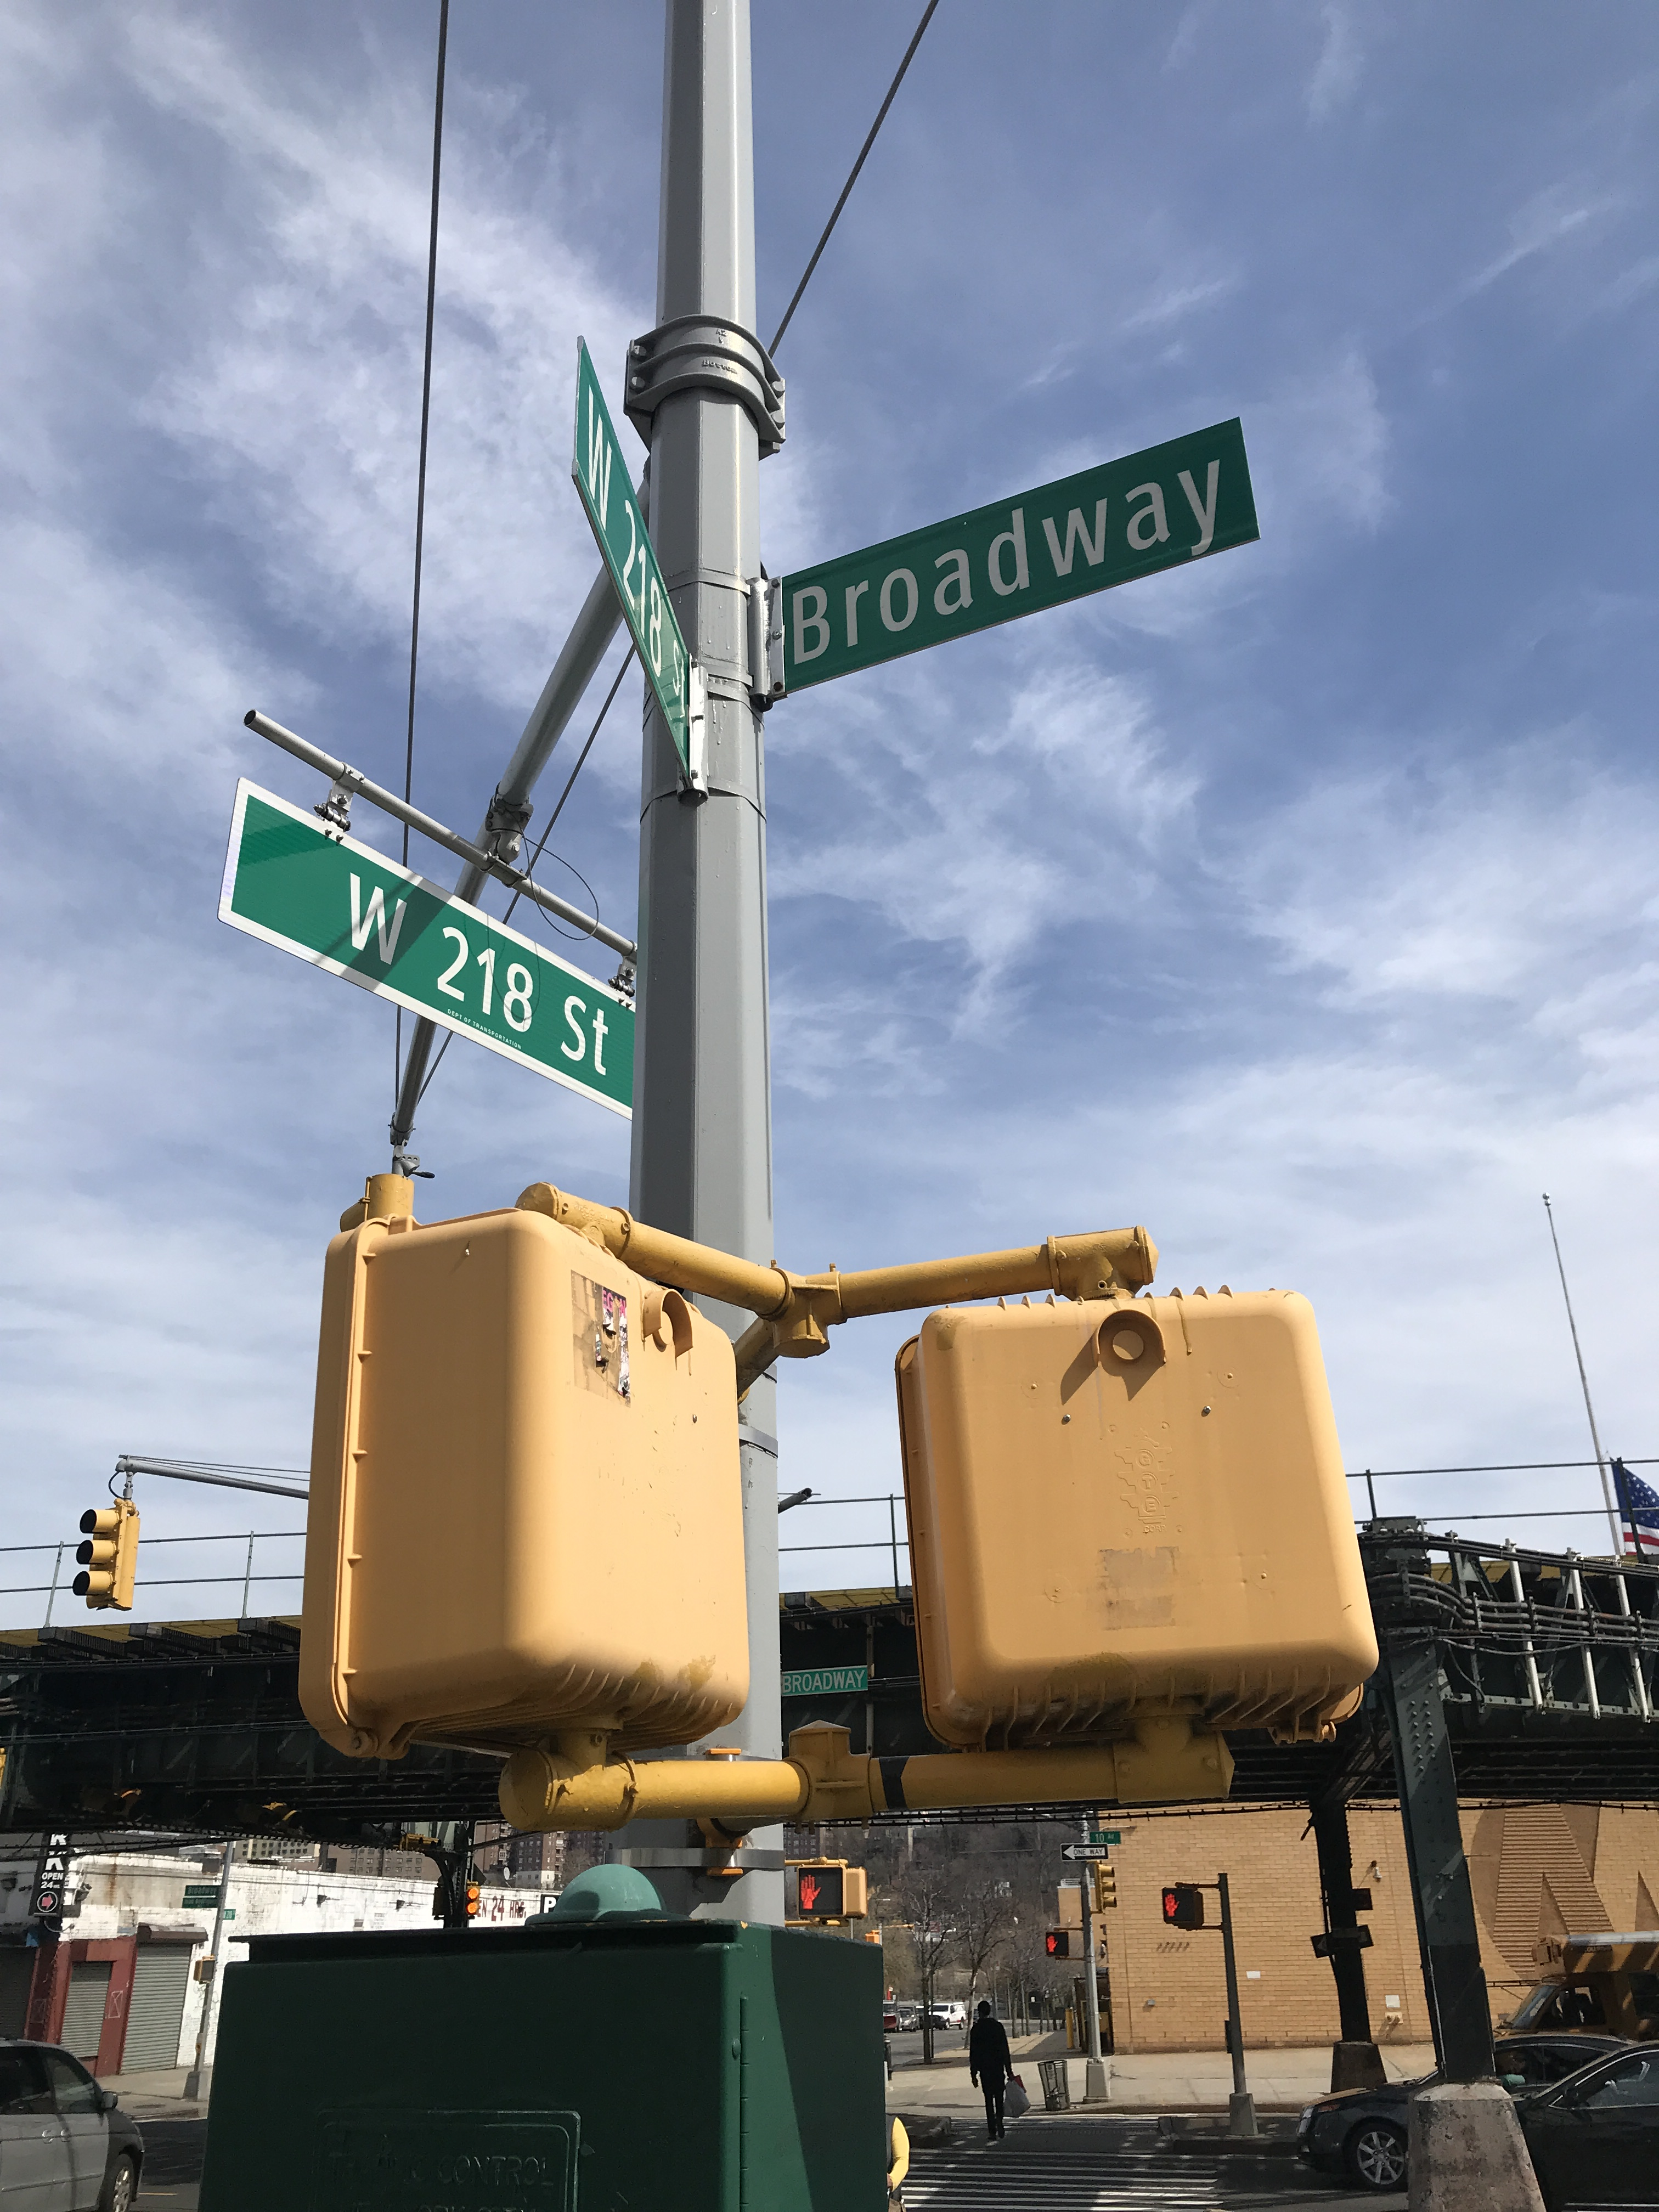 218th Street and Broadway.JPG